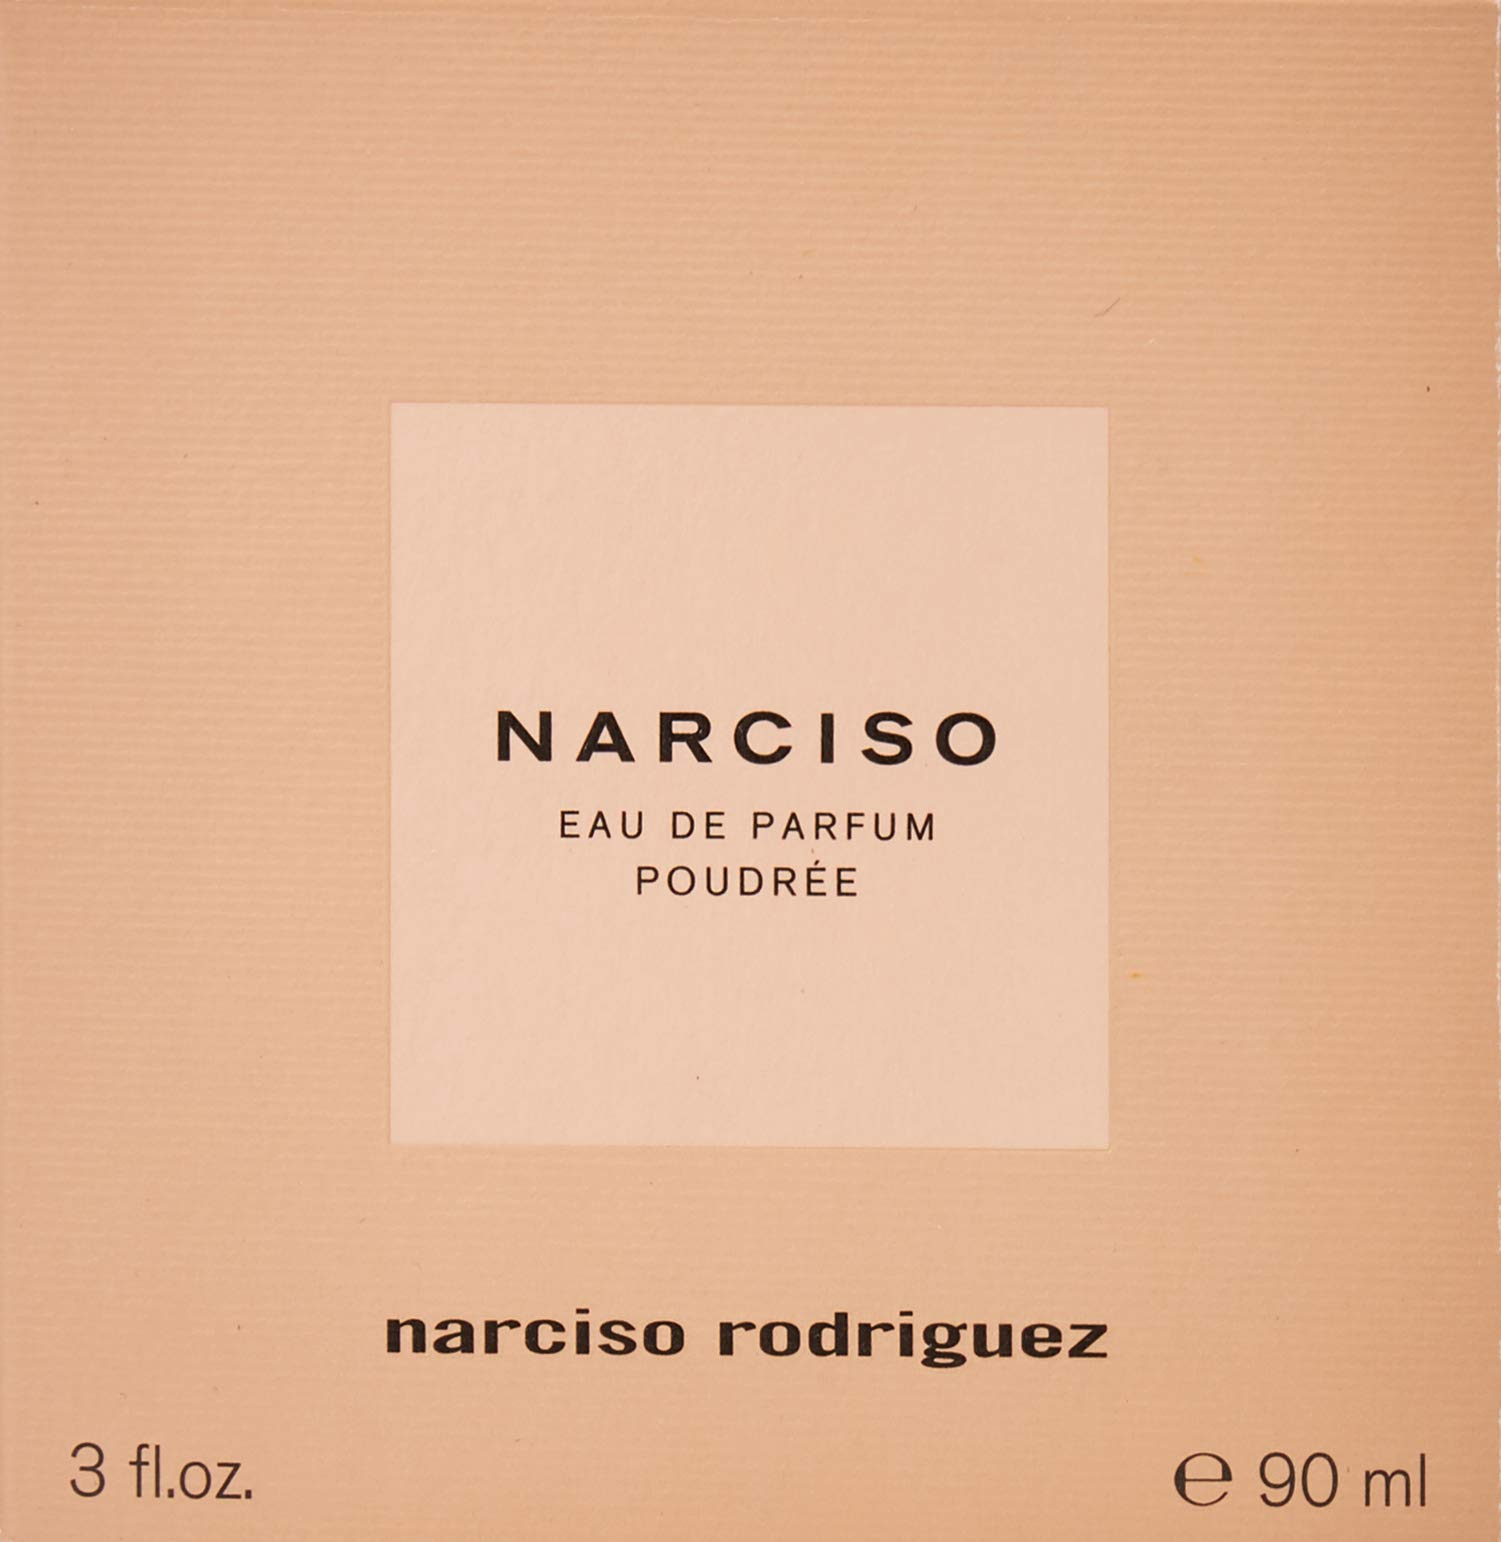 Narciso Poudree by Narciso Rodriguez - perfumes for women - Eau de Parfum, 90ml